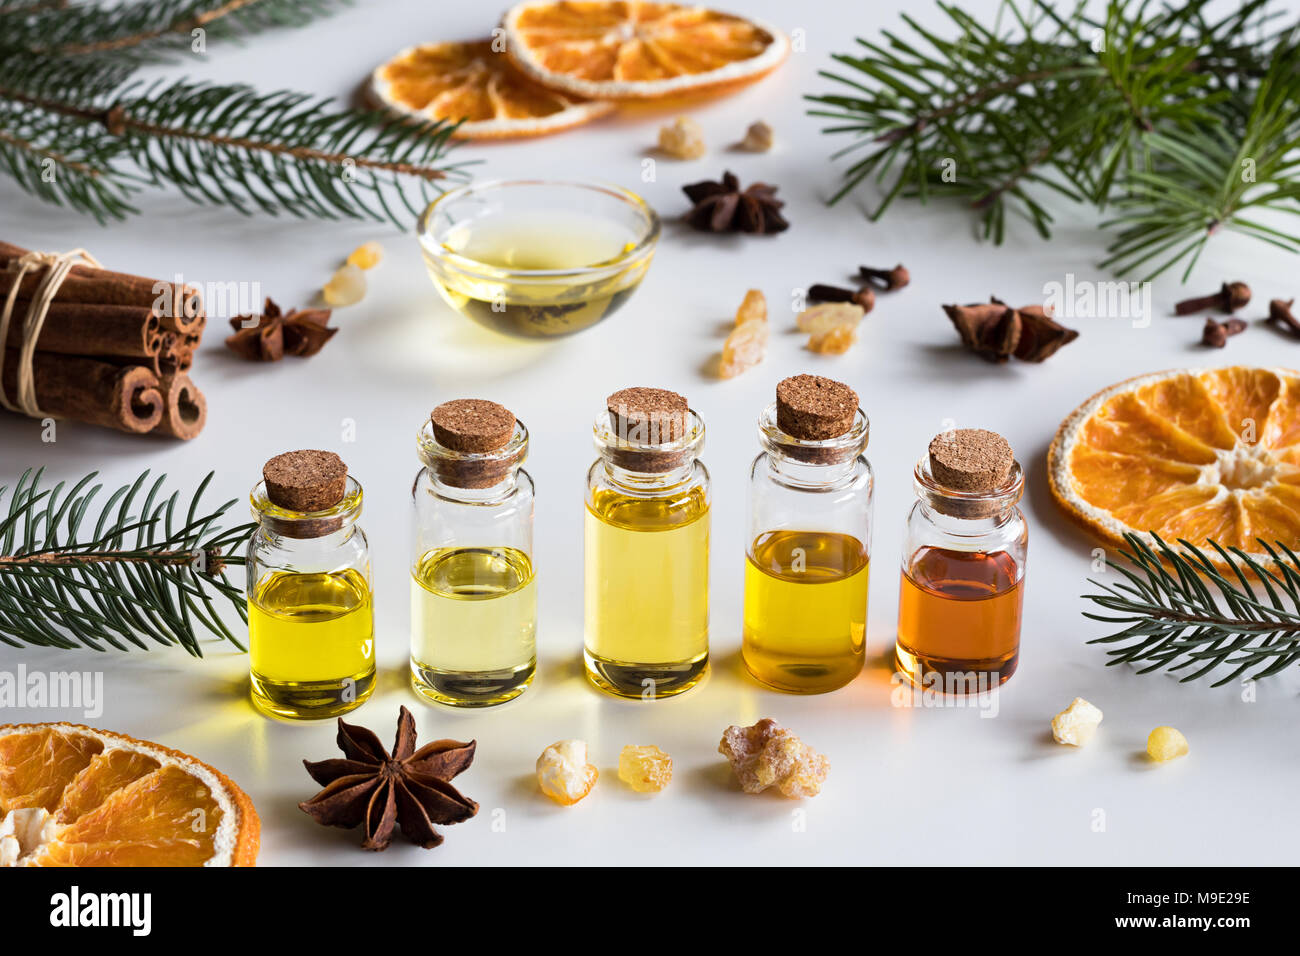 christmas selection of essential oils and spices on white background bottles of essential oil spruce fir frankincense resin star anise cinnamon - Christmas Essential Oils